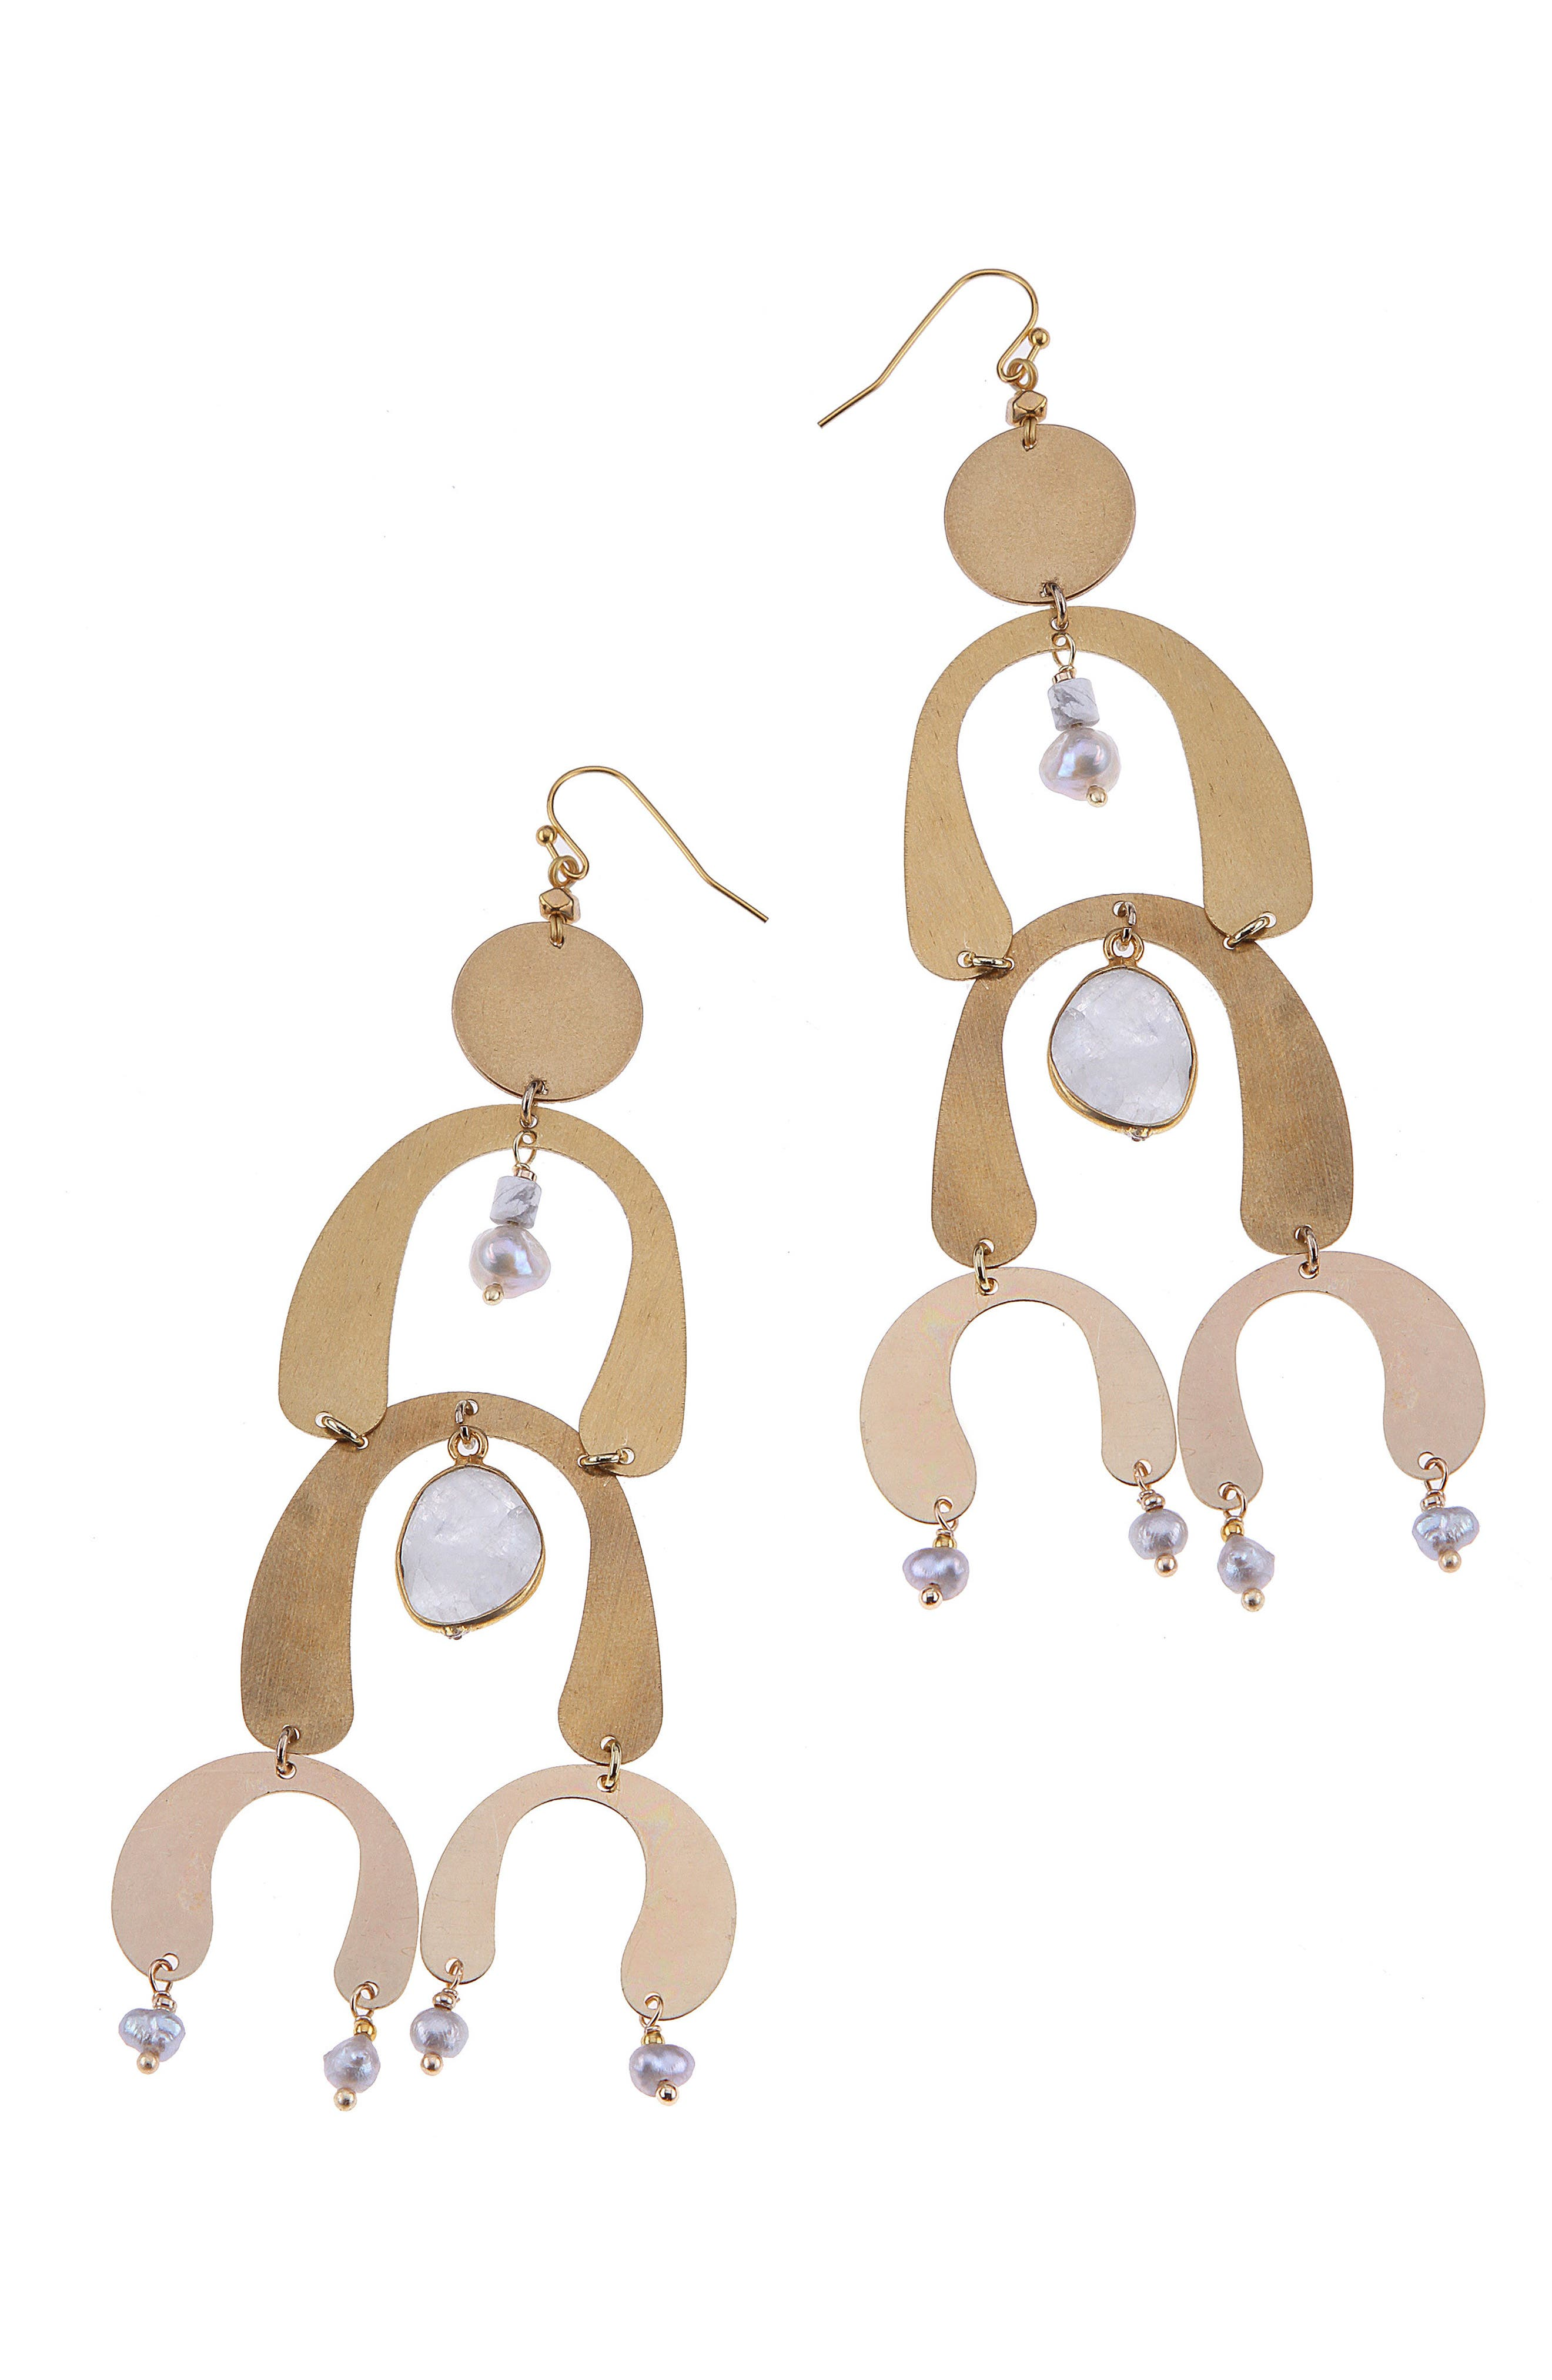 Brass Arch Moonstone & Freshwater Pearl Statement Earrings,                             Main thumbnail 1, color,                             100